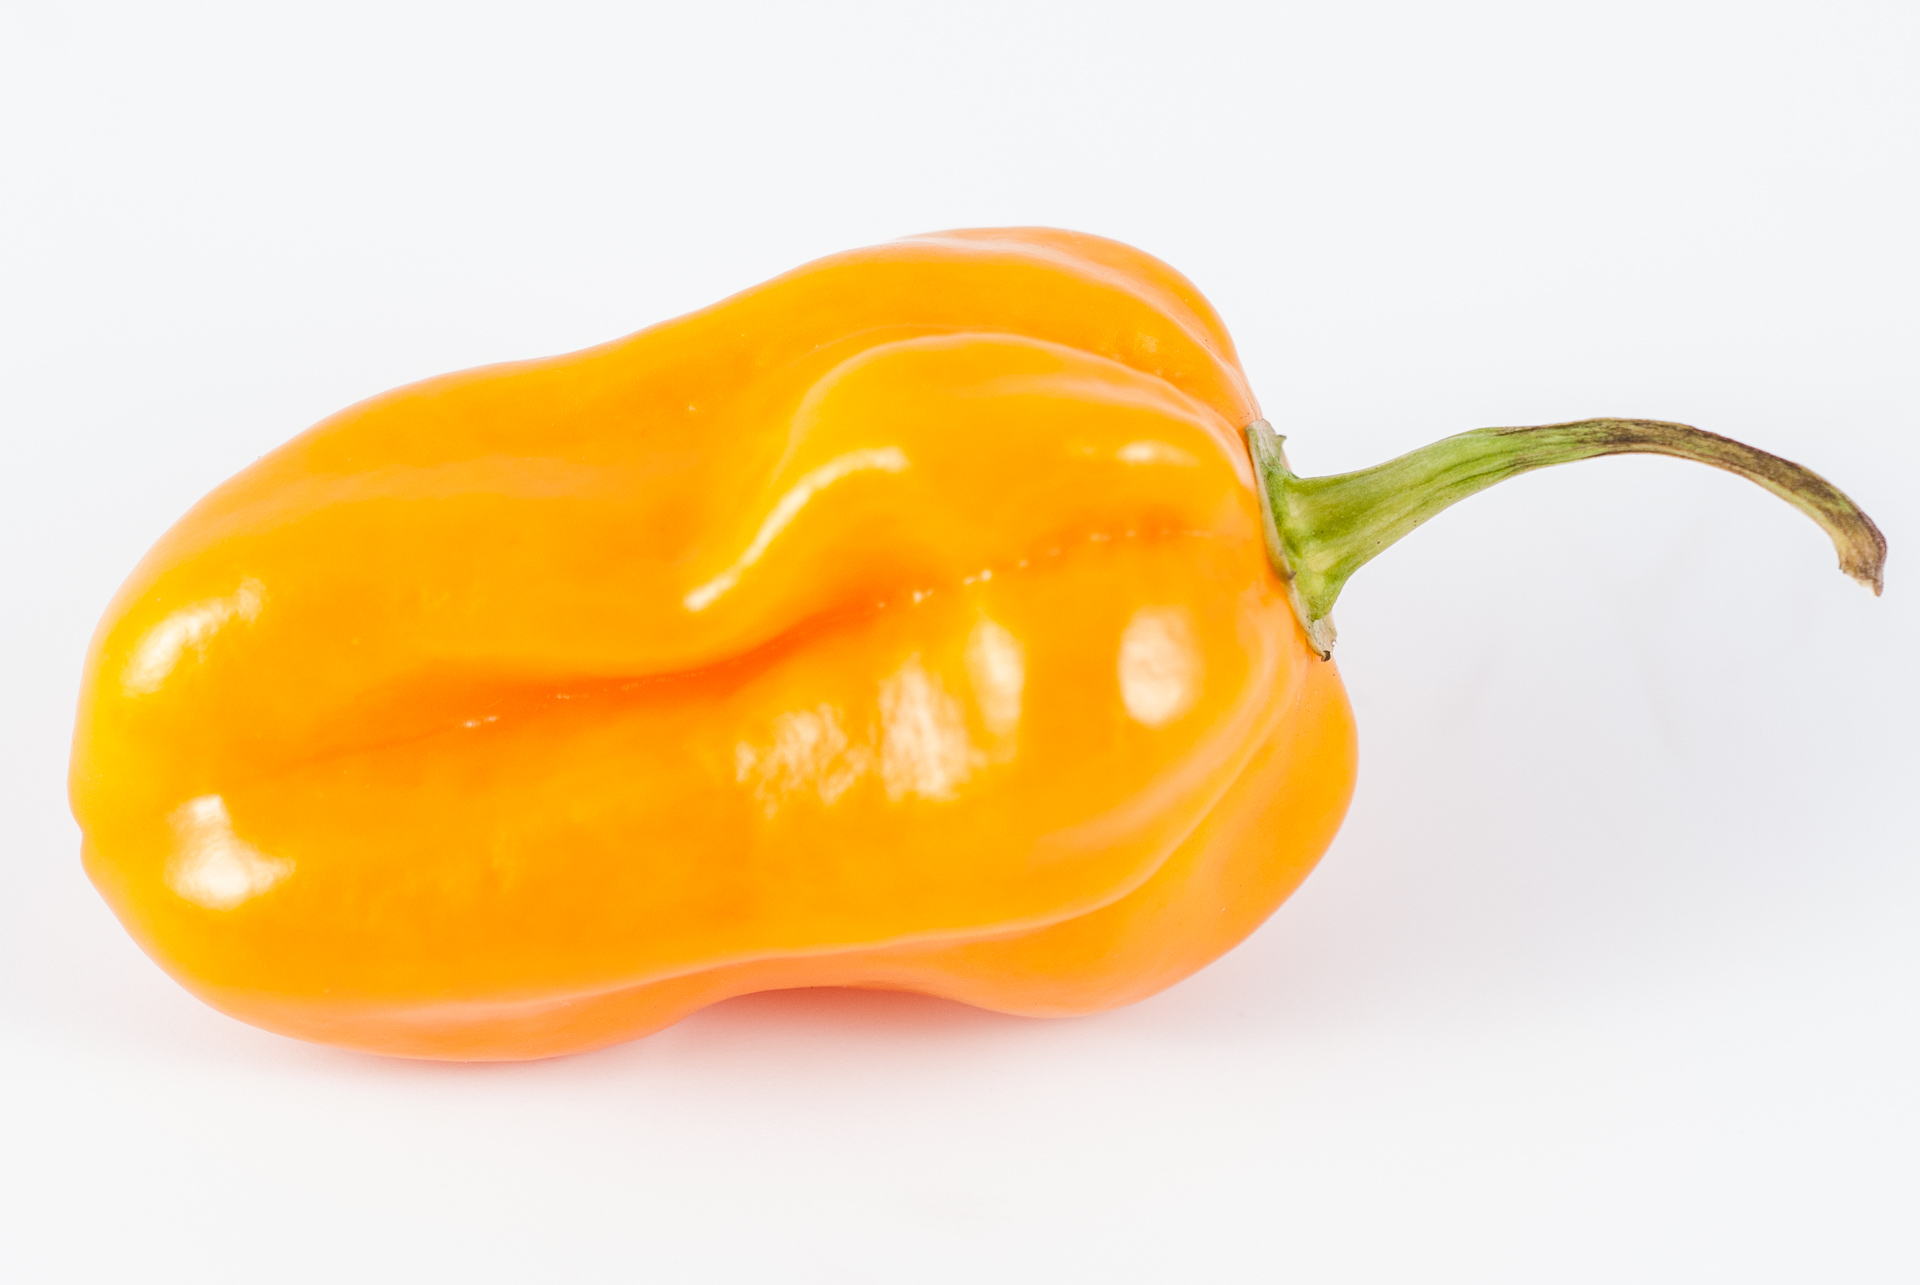 Lorai - Capsicum annuum - Chilisorte